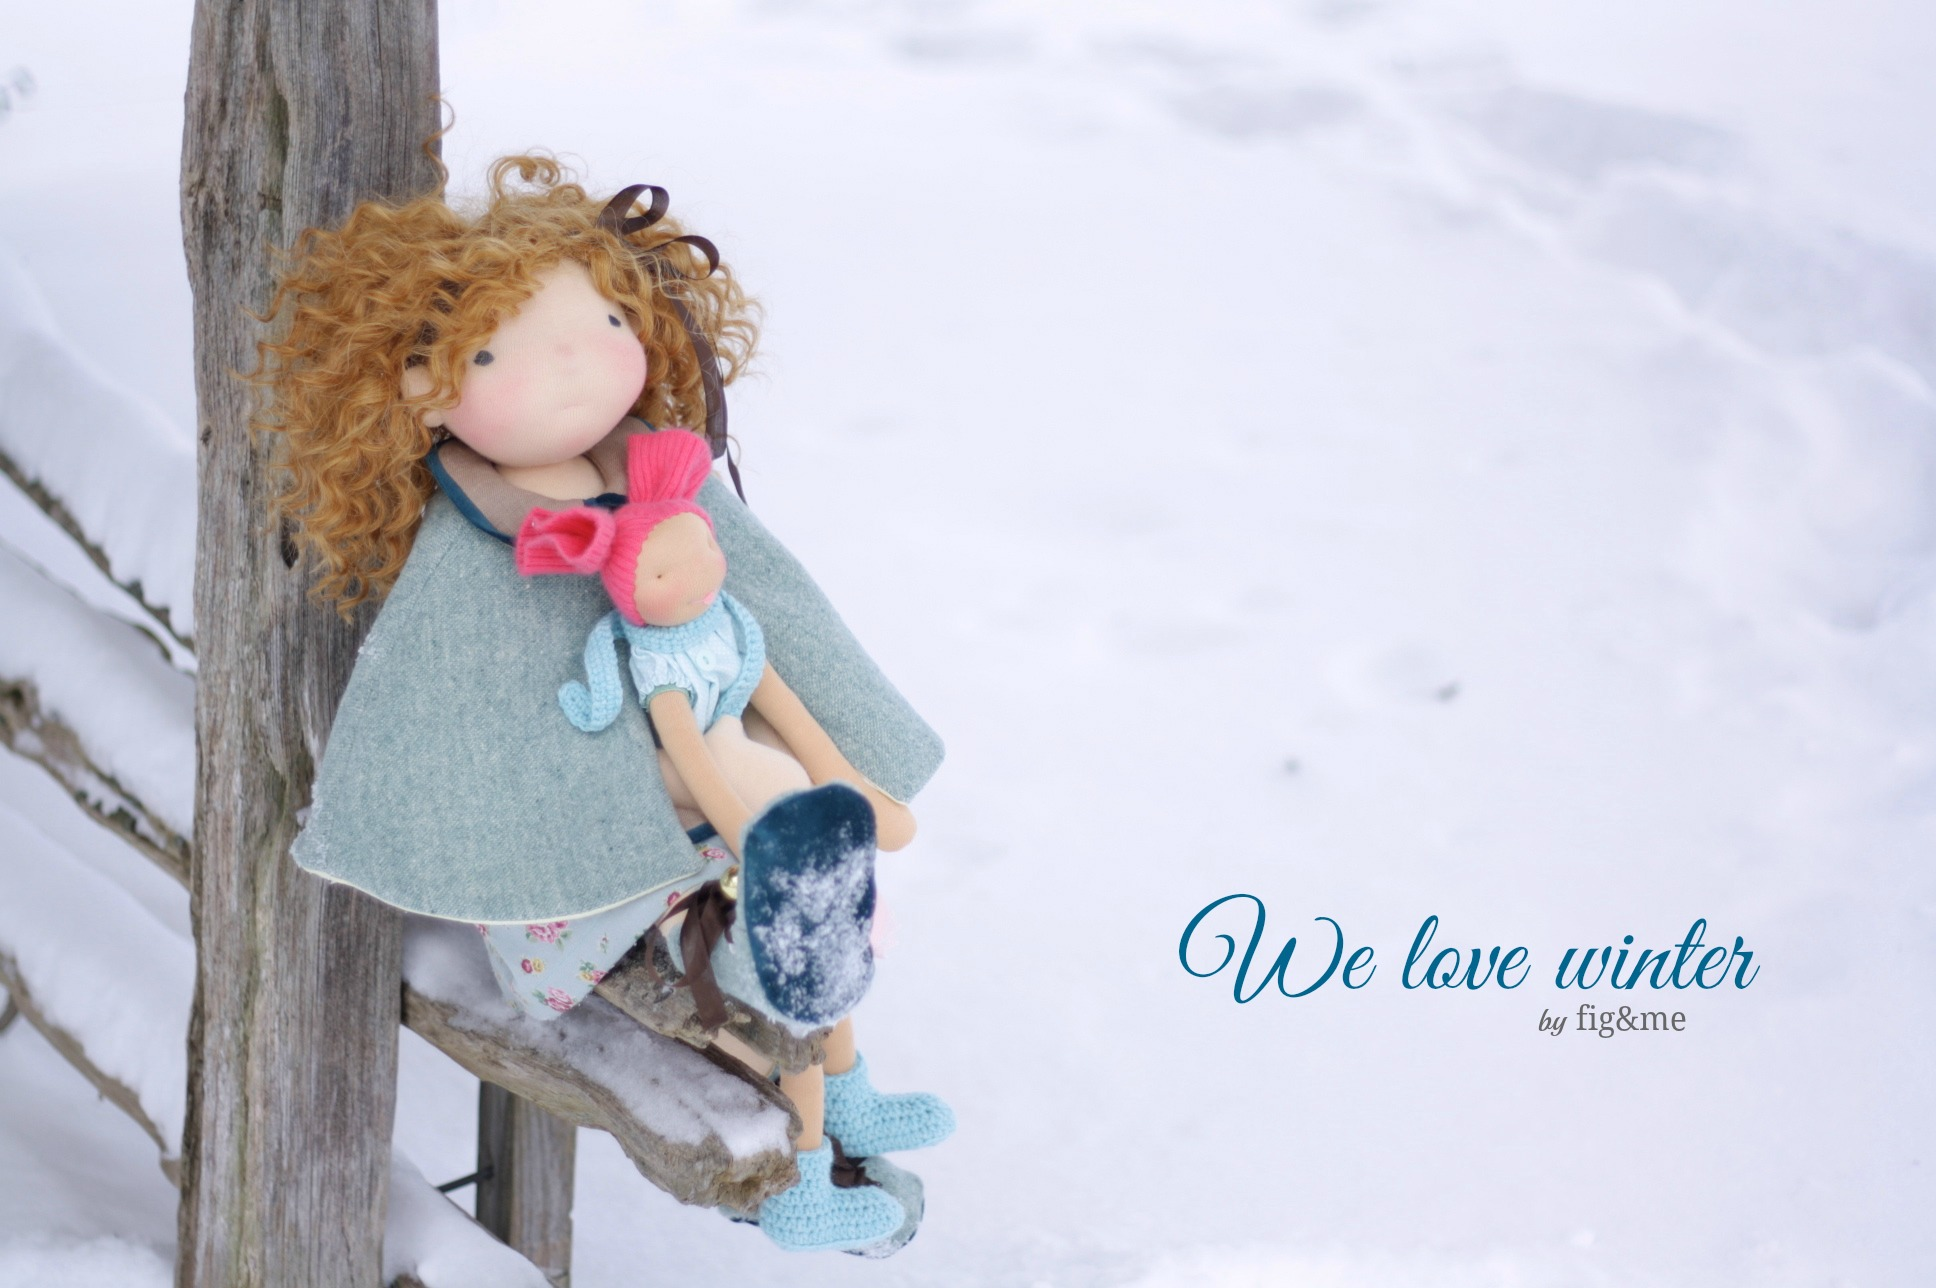 Hermione and Lollipop love Winter, by Fig&me.